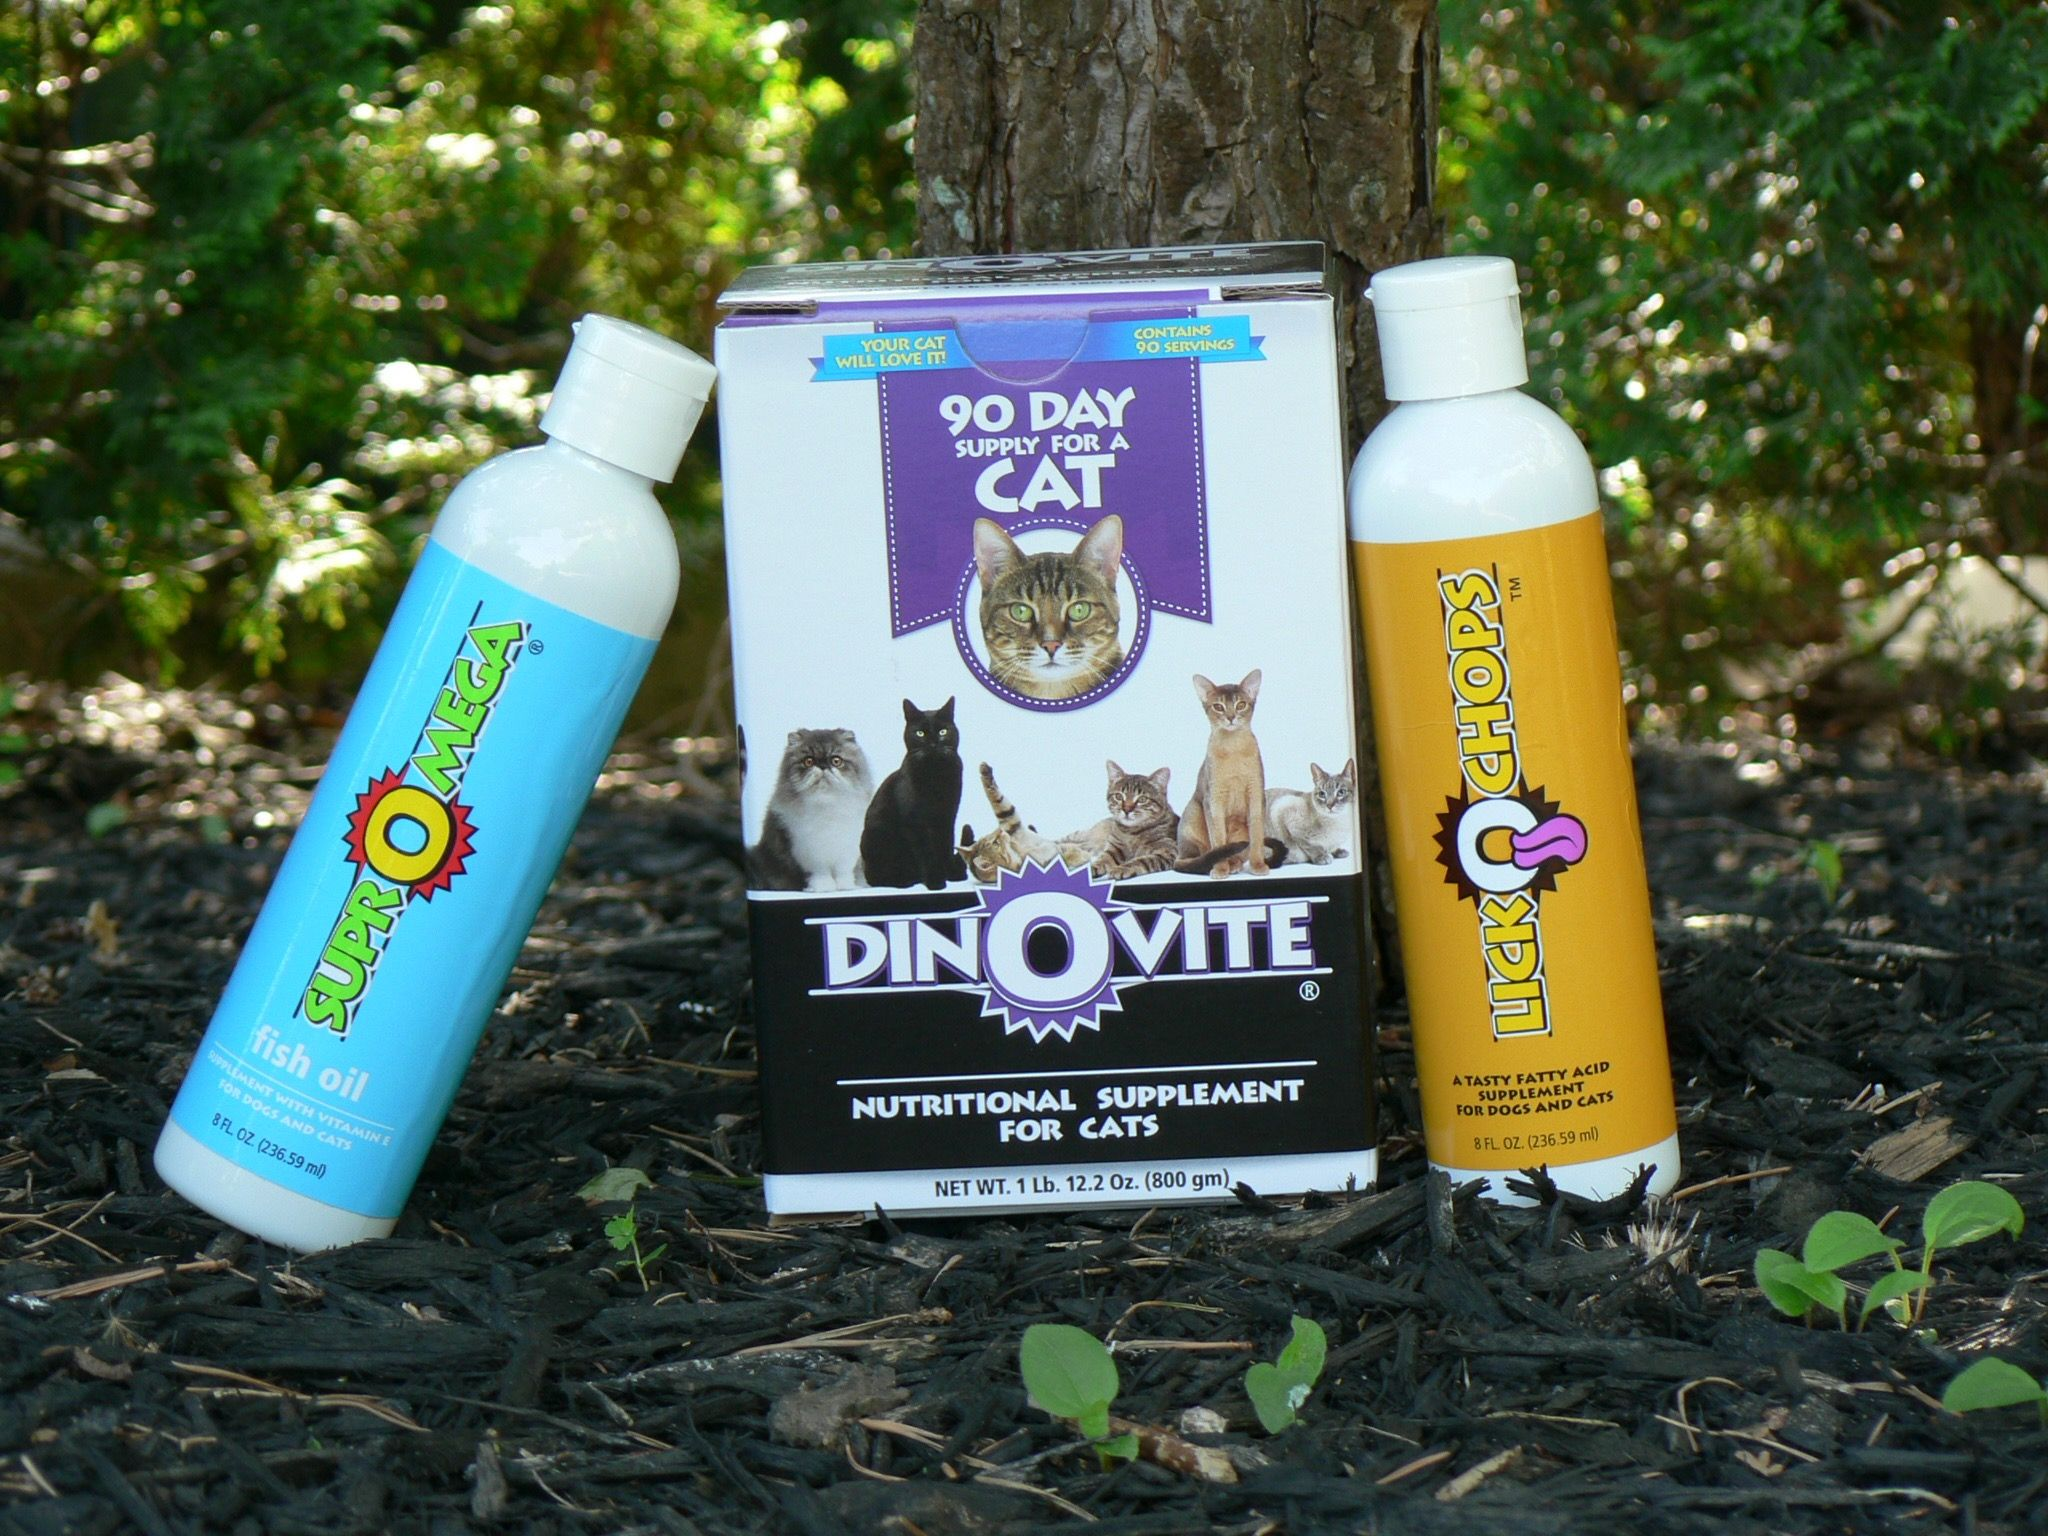 Pin By Dinovite On Natural Pet Products Fish Oil Nutritional